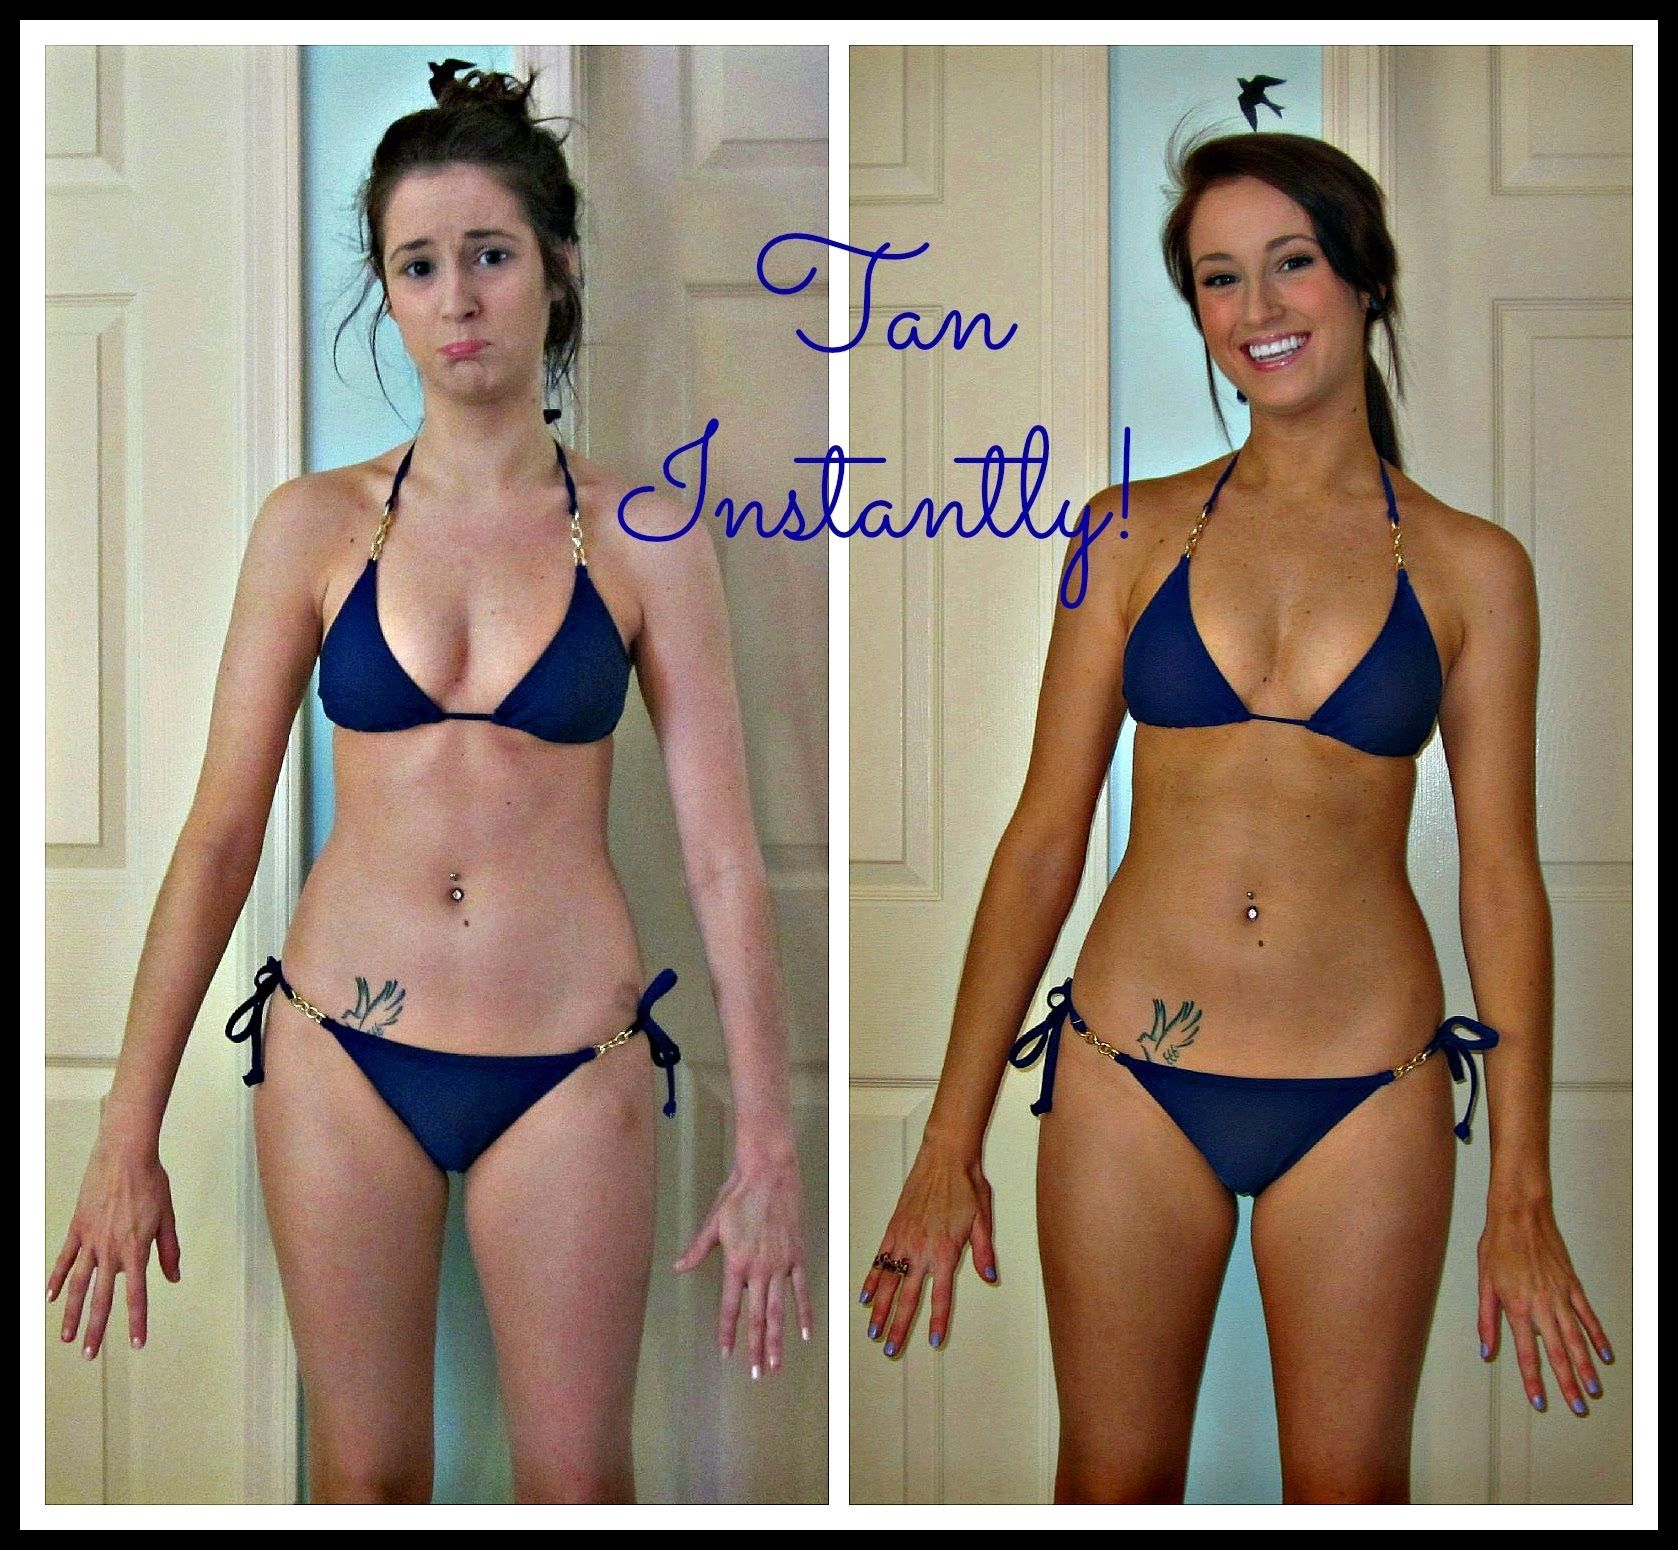 Tanning Tips Love Her Videos Love To Spray Tan I Had Melinoma And I Don T Like To Lay In The Tanning Bed Tanning Tips Self Tanning Tips Tanning Skin Care